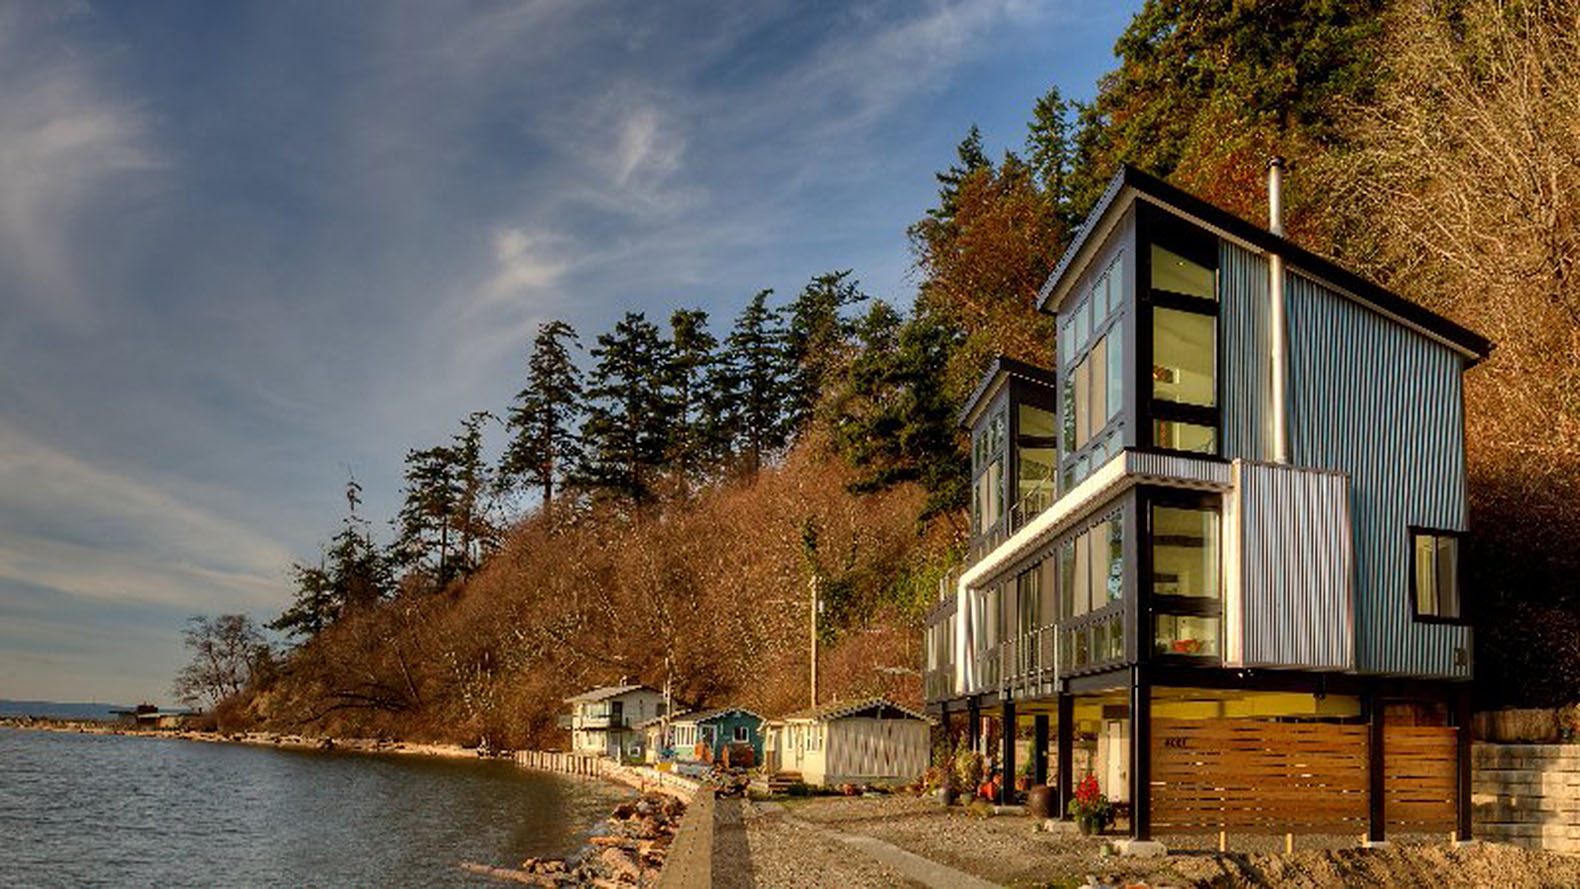 Future proof beach residence in washington state is raised for Architect washington state